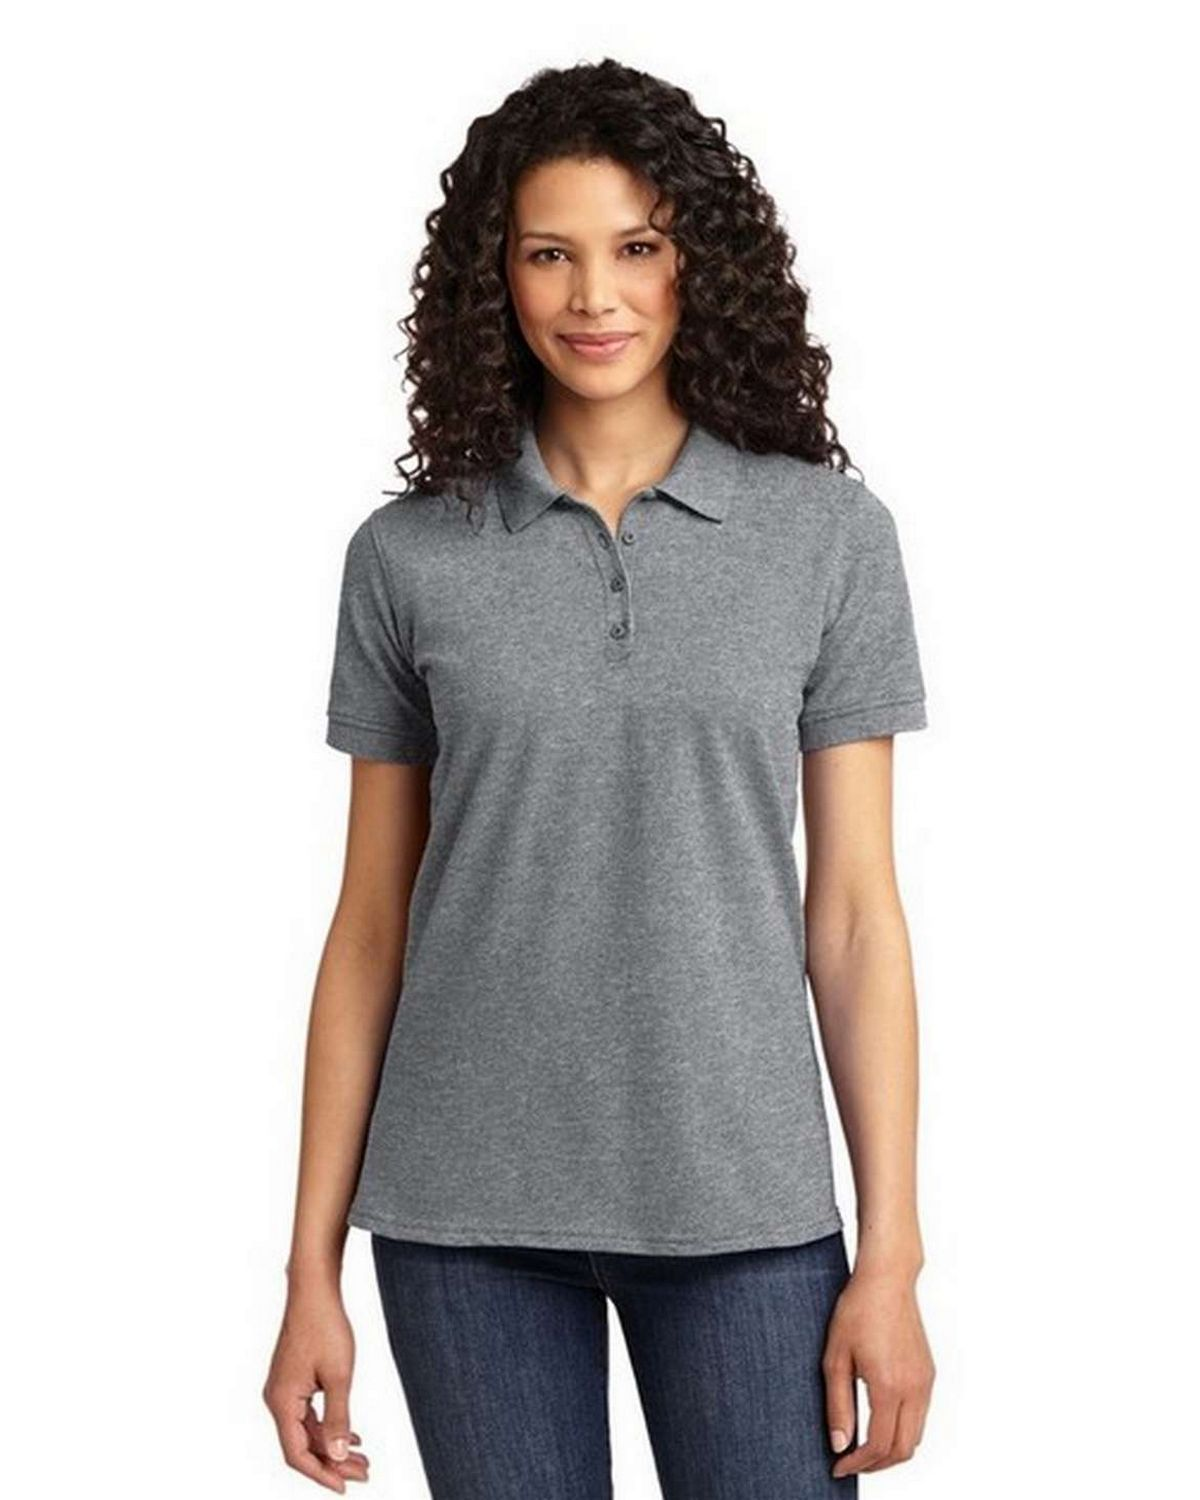 Port & Company LKP155 Ladiesby Port Authority 50/50 Pique Polo